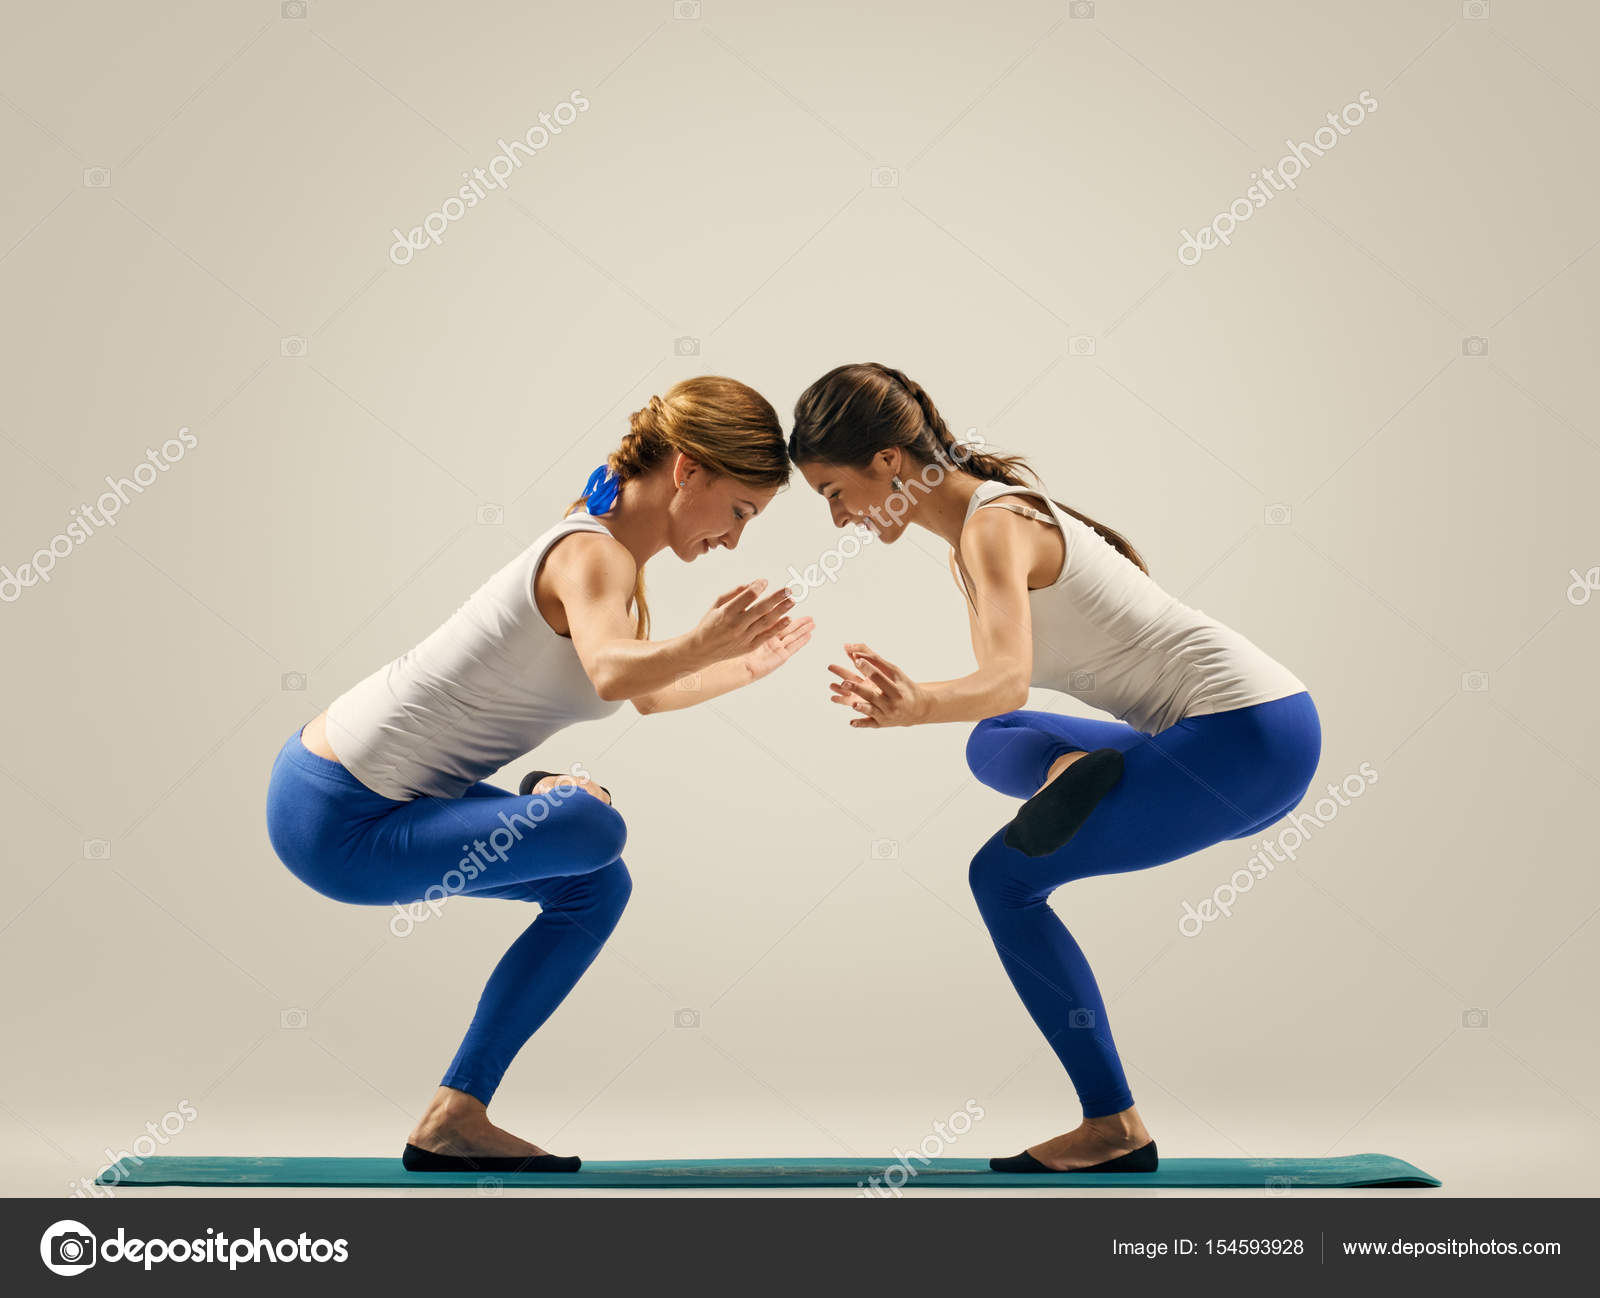 Yoga In Pair Women Duo Balance On One Leg Stock Photo